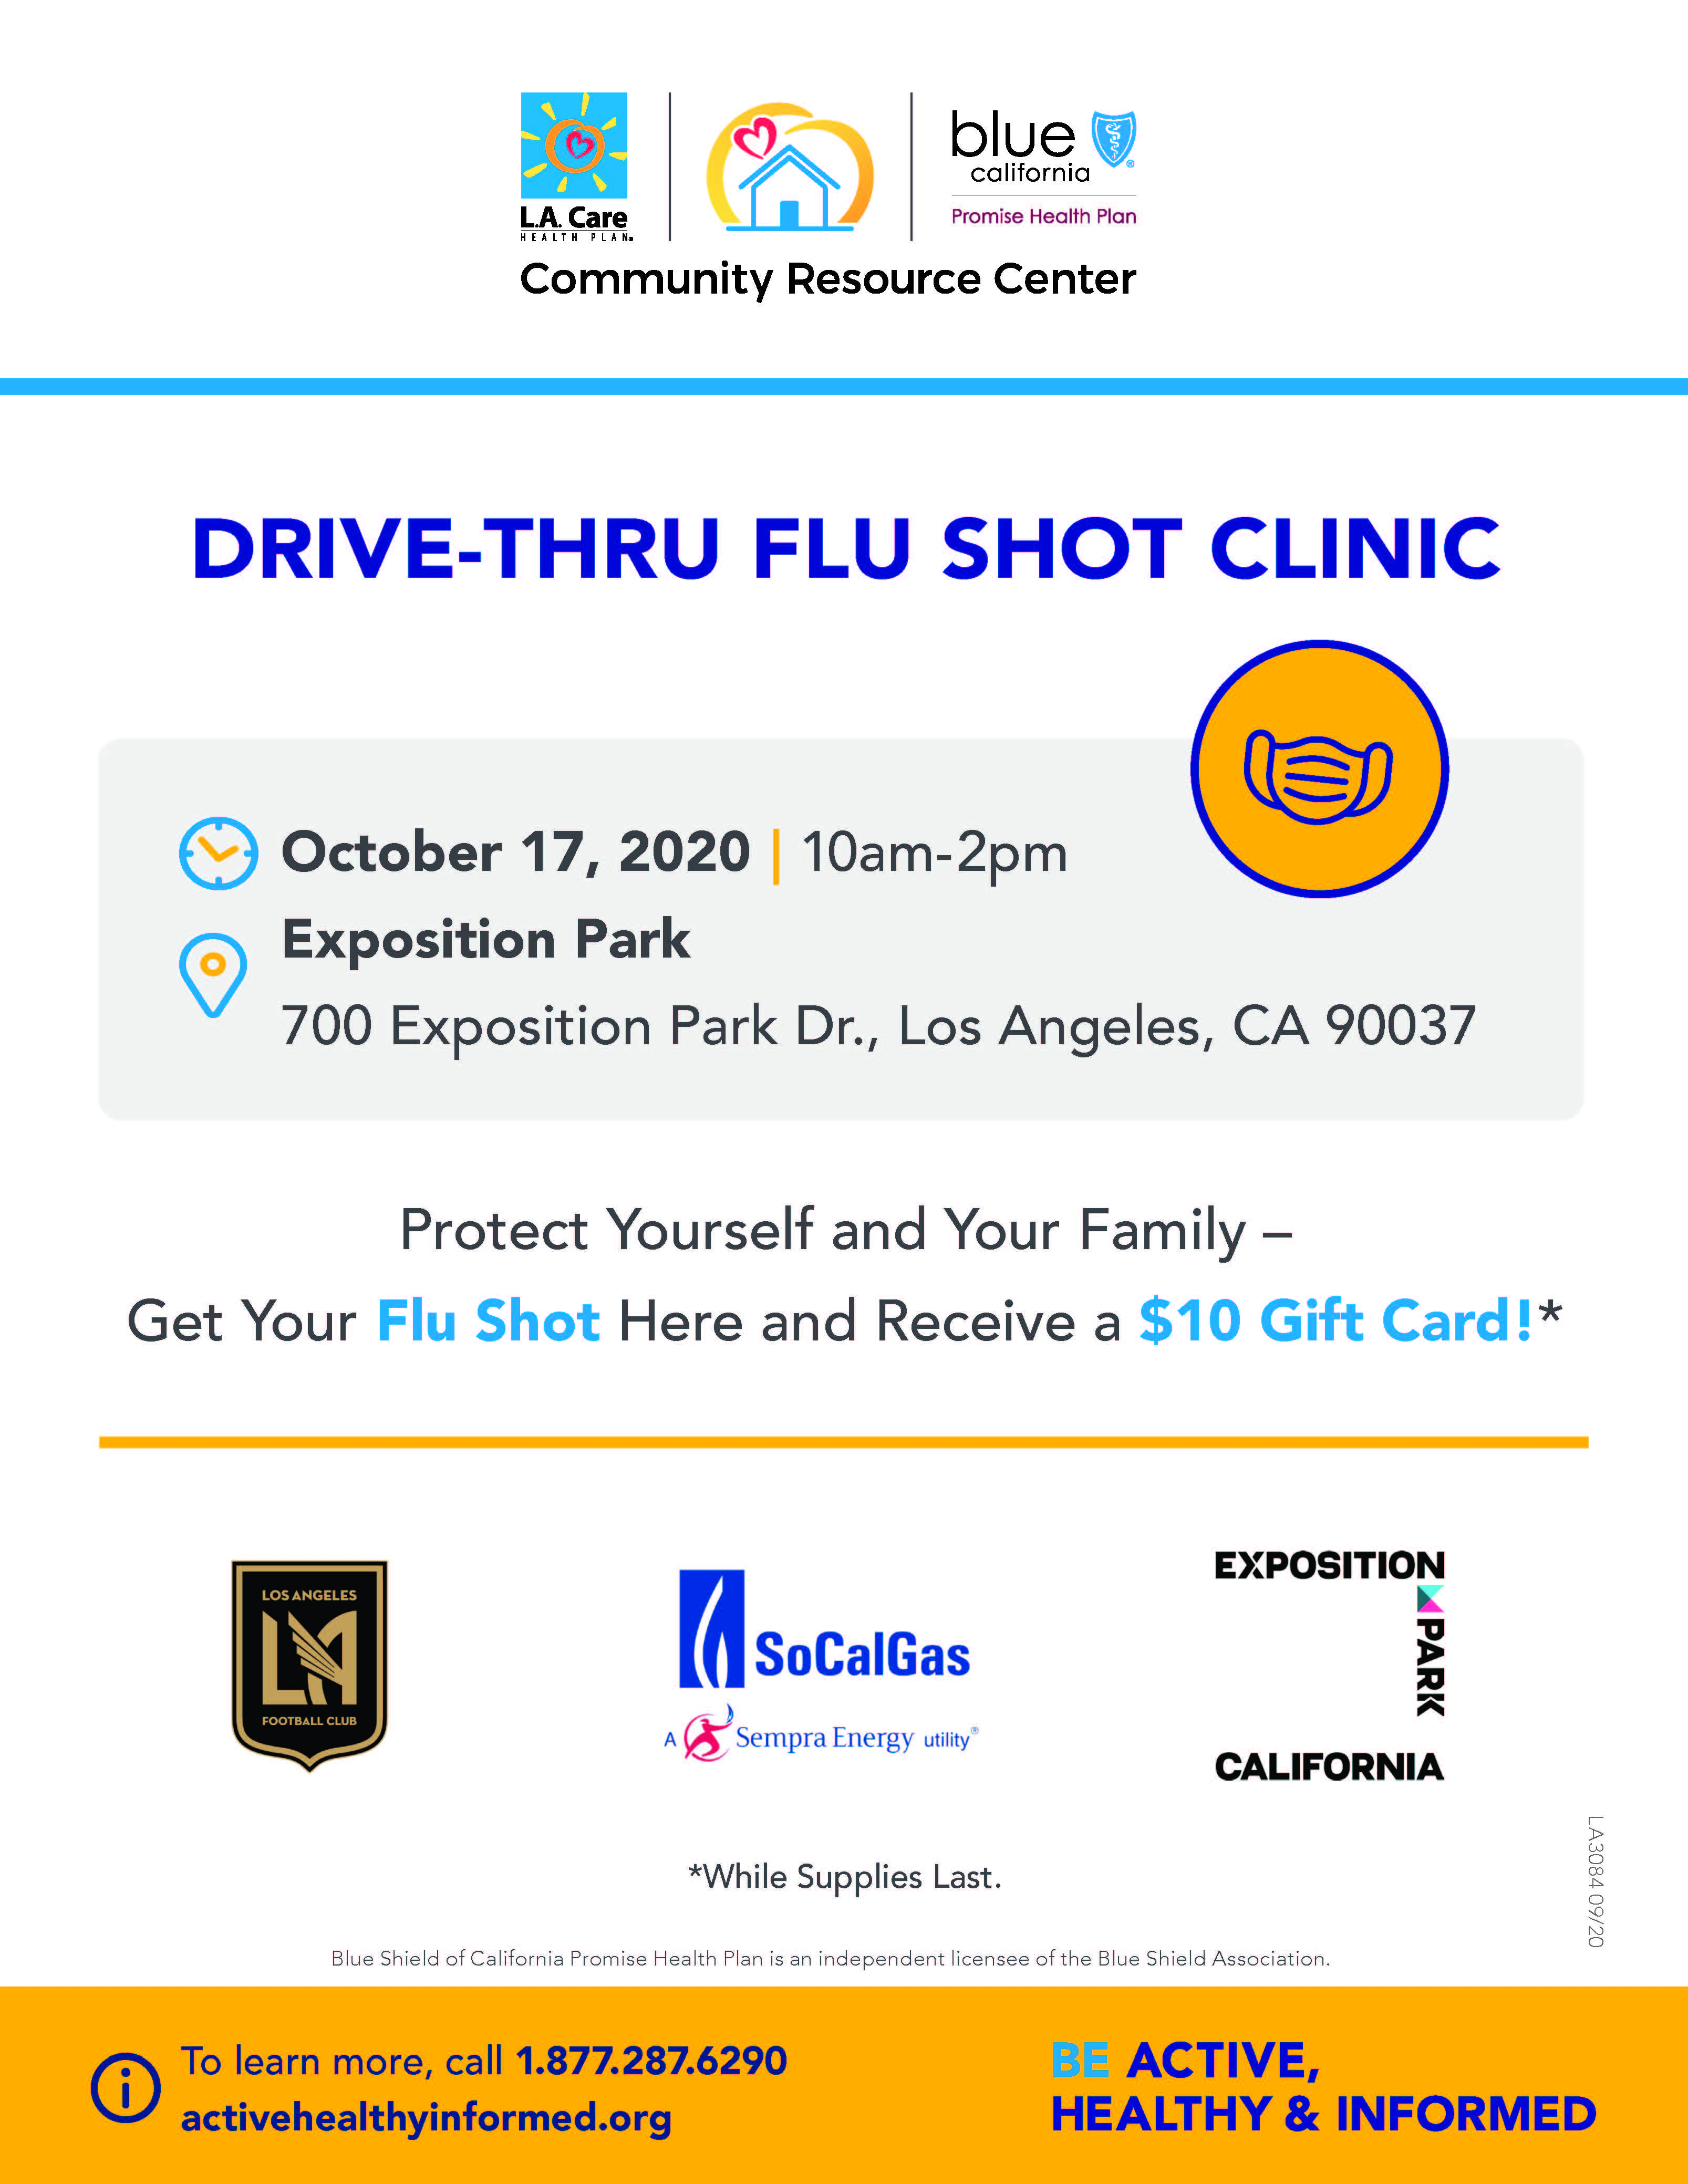 LA Care Drive Thru Flu Shot Clinic on October 17, 2020 at Exposition Park 700 Exposition Drive, Los Angeles CA 90037